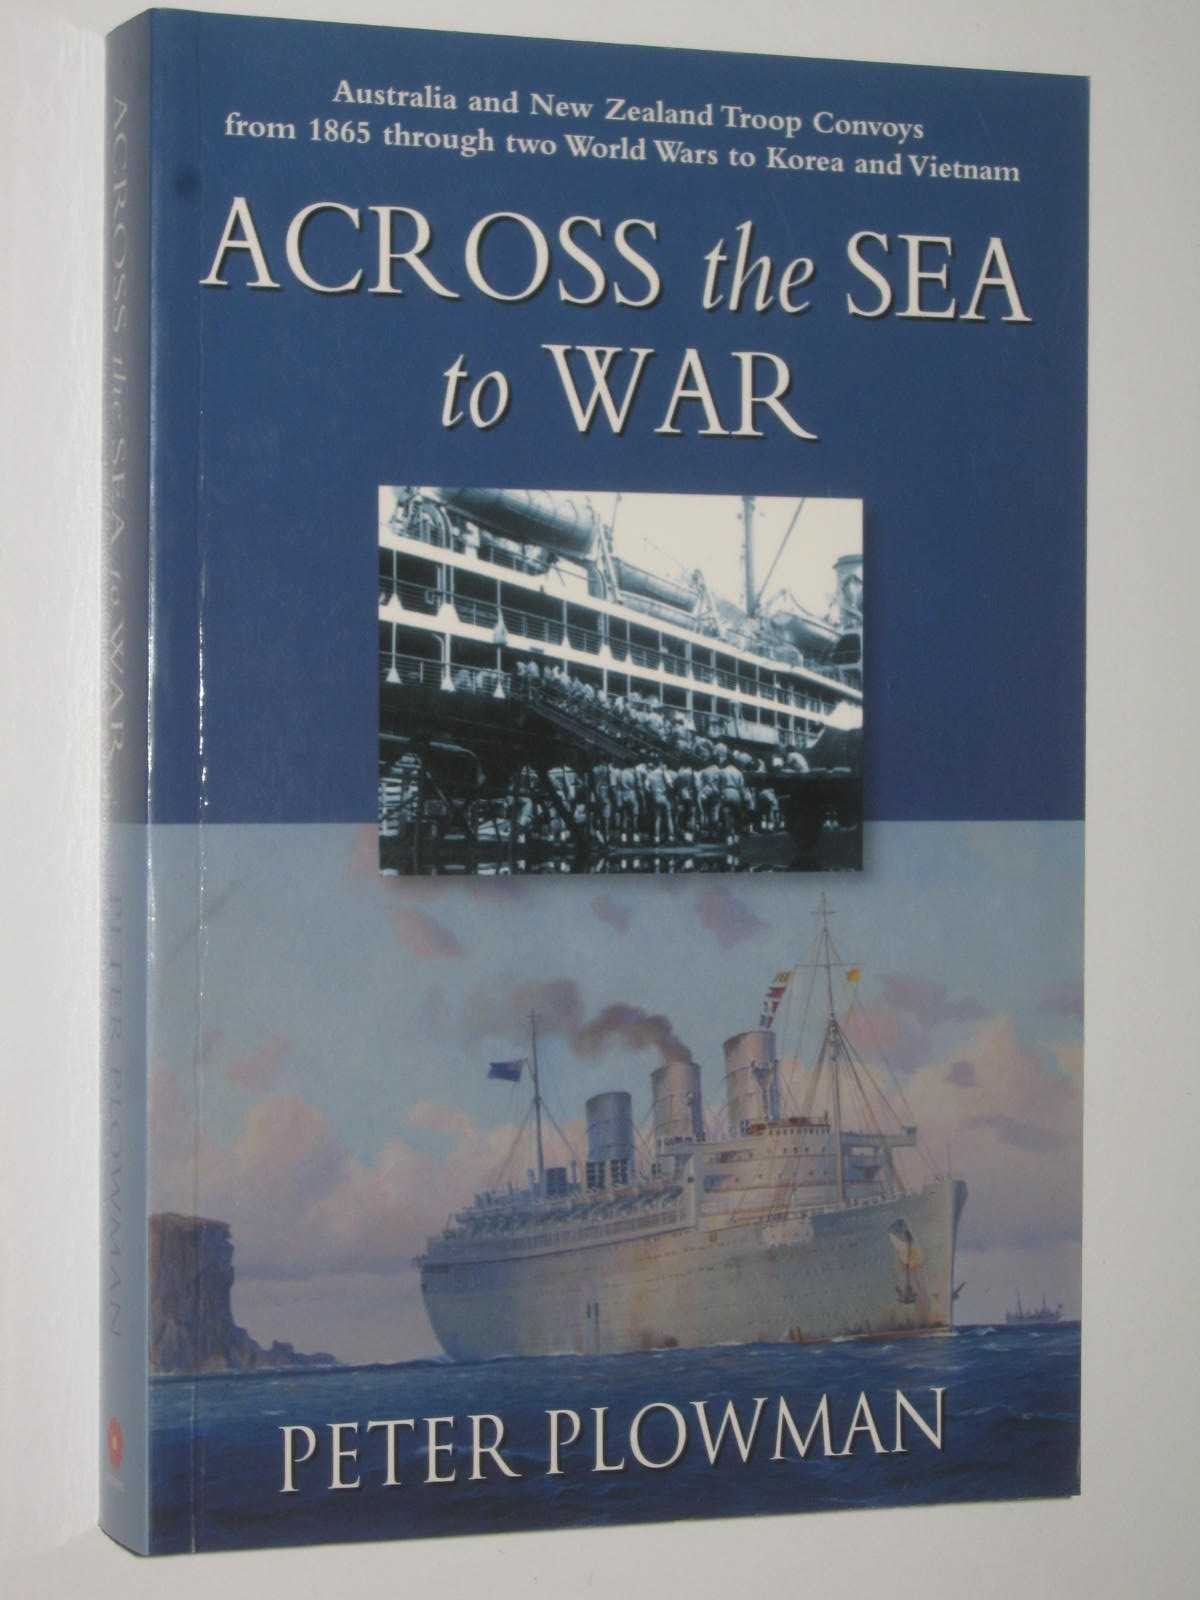 Image for Across the Sea to War : Australia and New Zealand Troop Convoys from 1865 Through Two World Wars to Korea and Vietnam